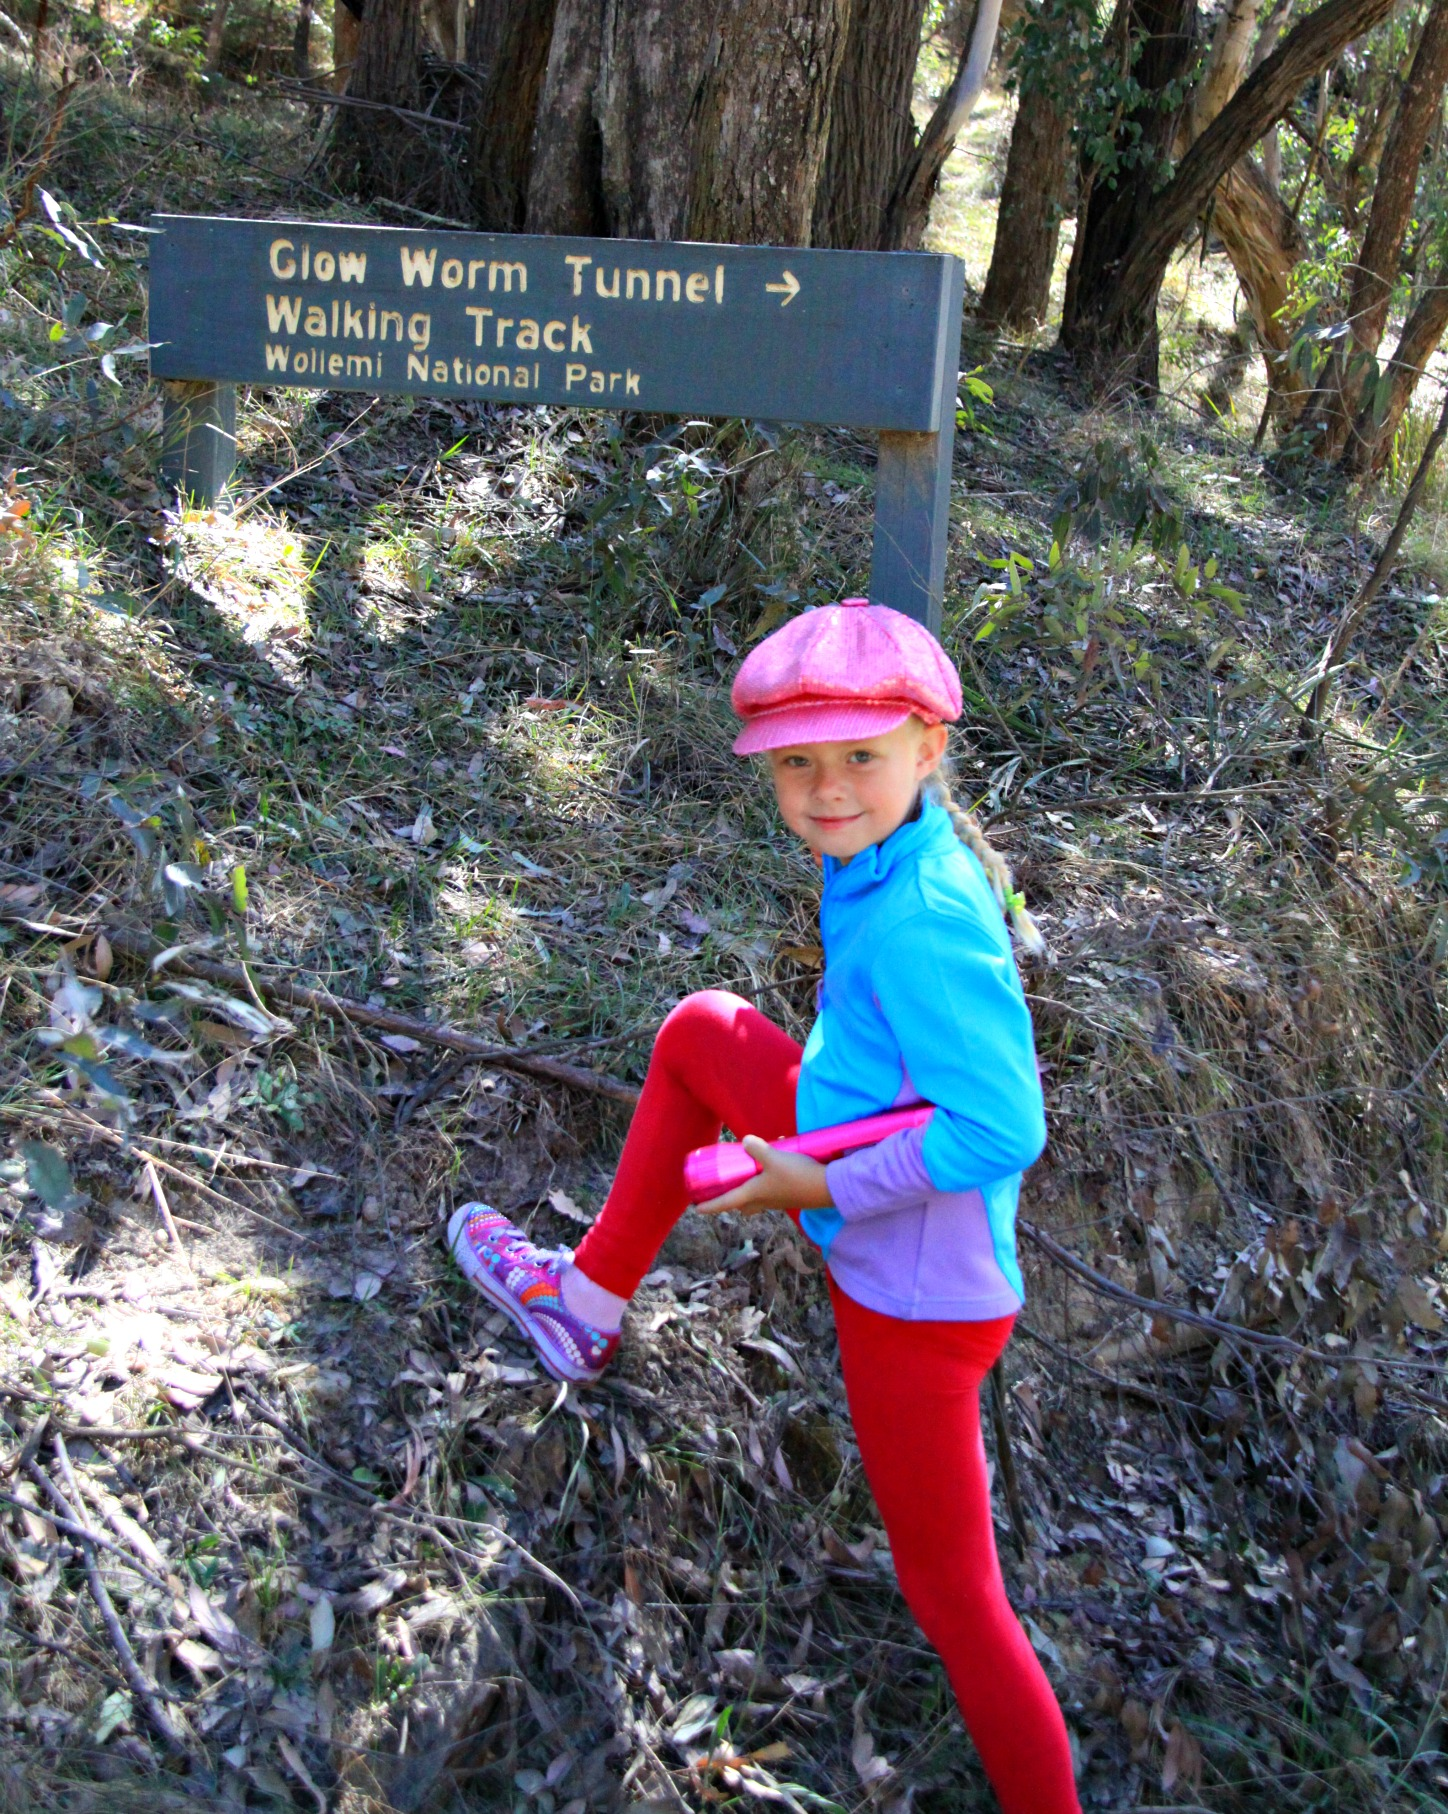 Important to look your best bushwalking.